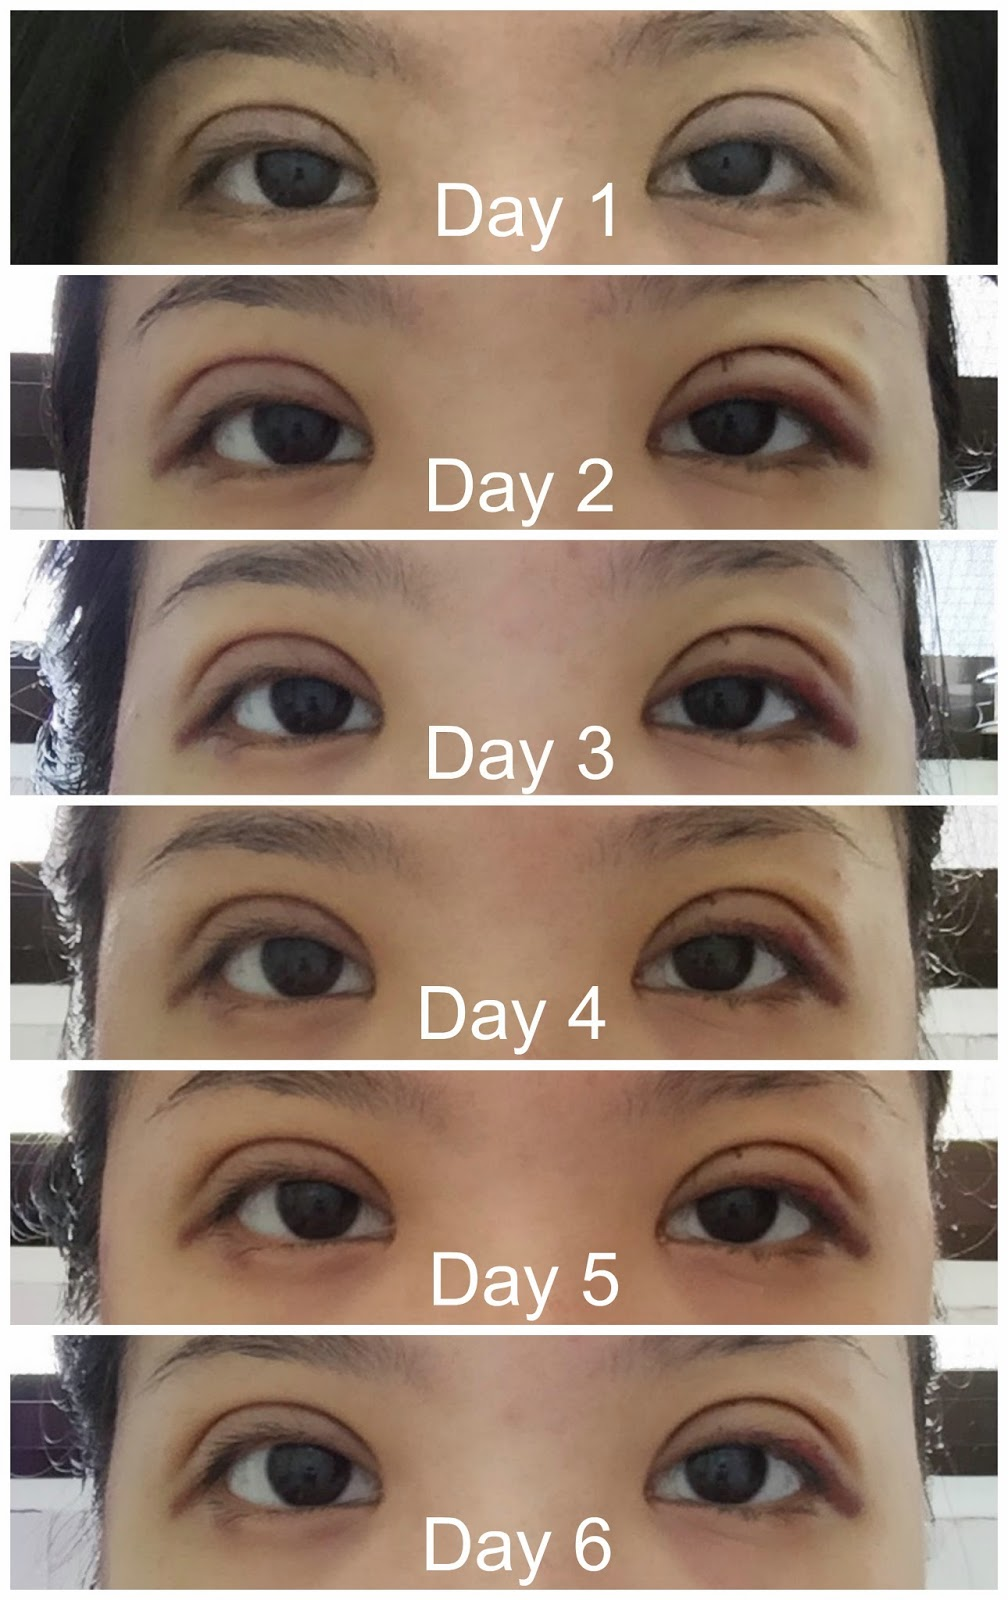 Double Eyelid Surgery: My Double Eyelid Surgery